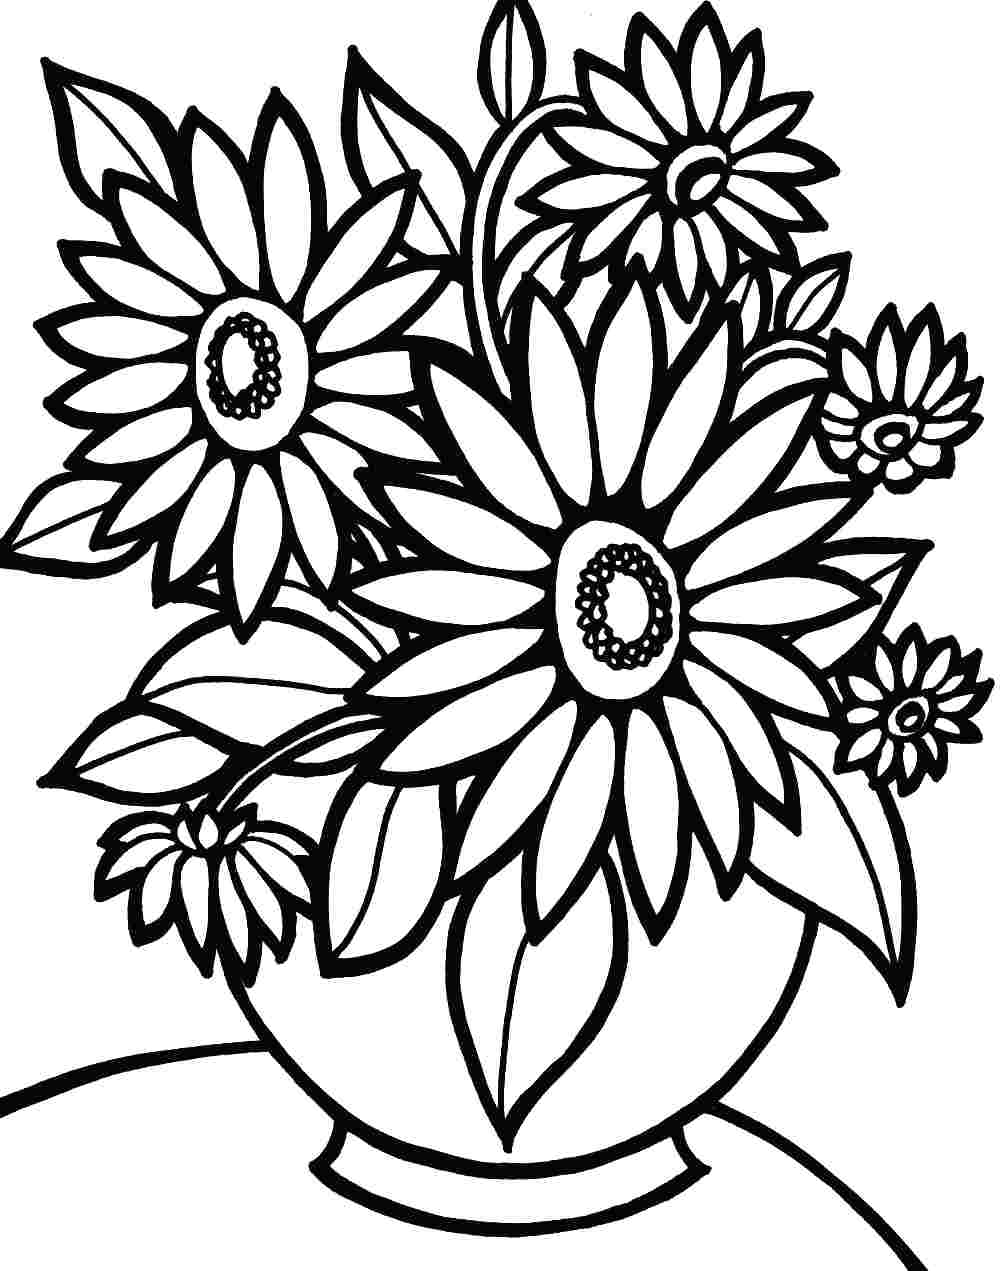 1000x1271 Coloring Appealing Garden Coloring Pages. Daisy Flower Garden